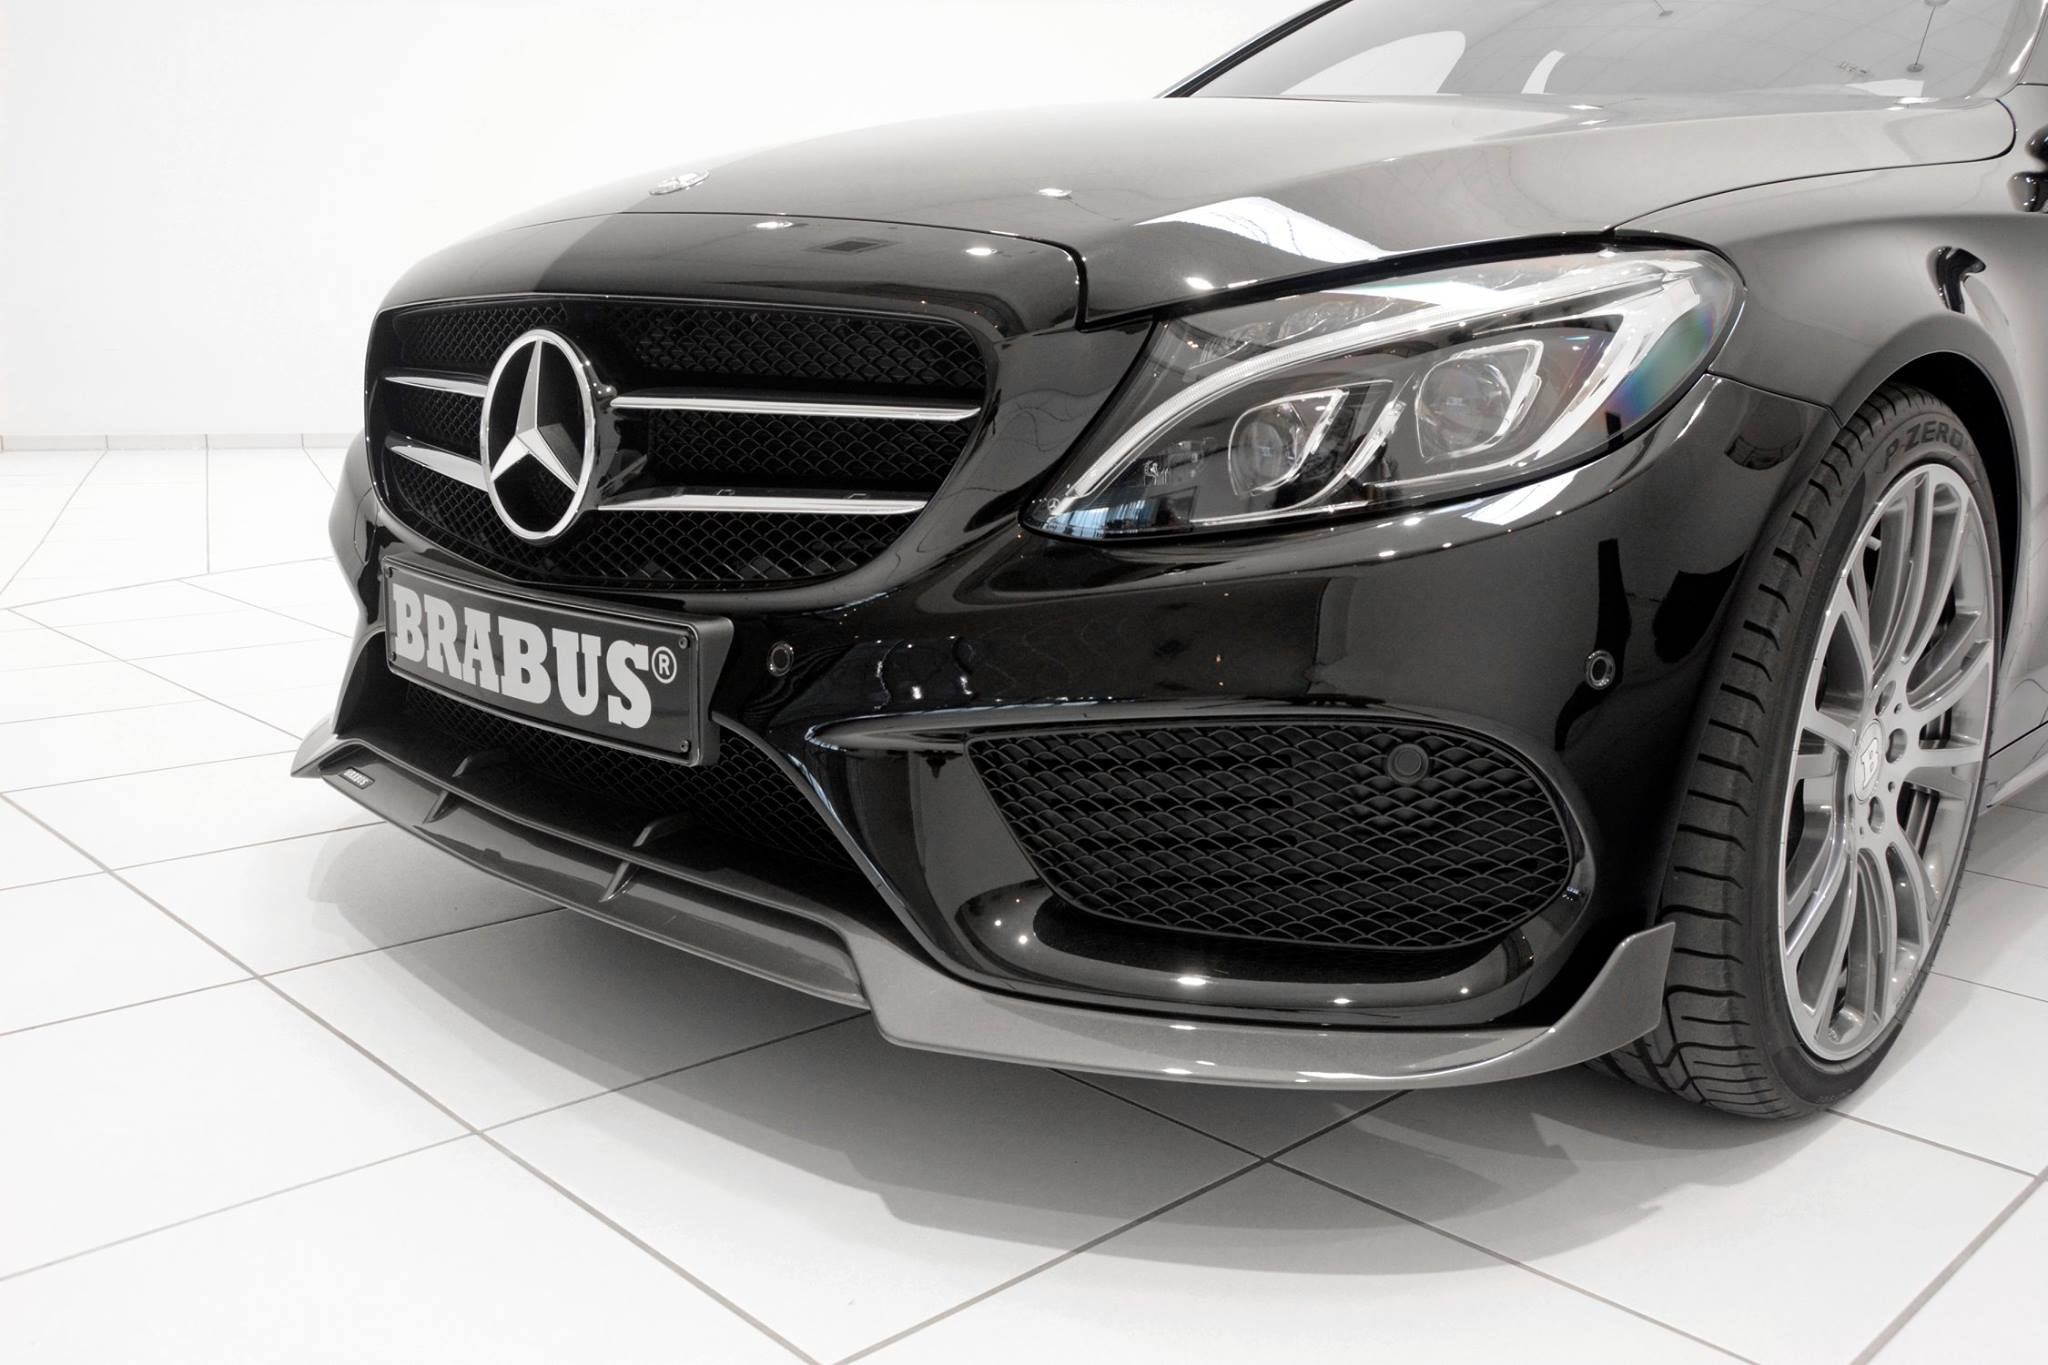 brabus aero kit for s205 c class wagon and a cool new look. Black Bedroom Furniture Sets. Home Design Ideas